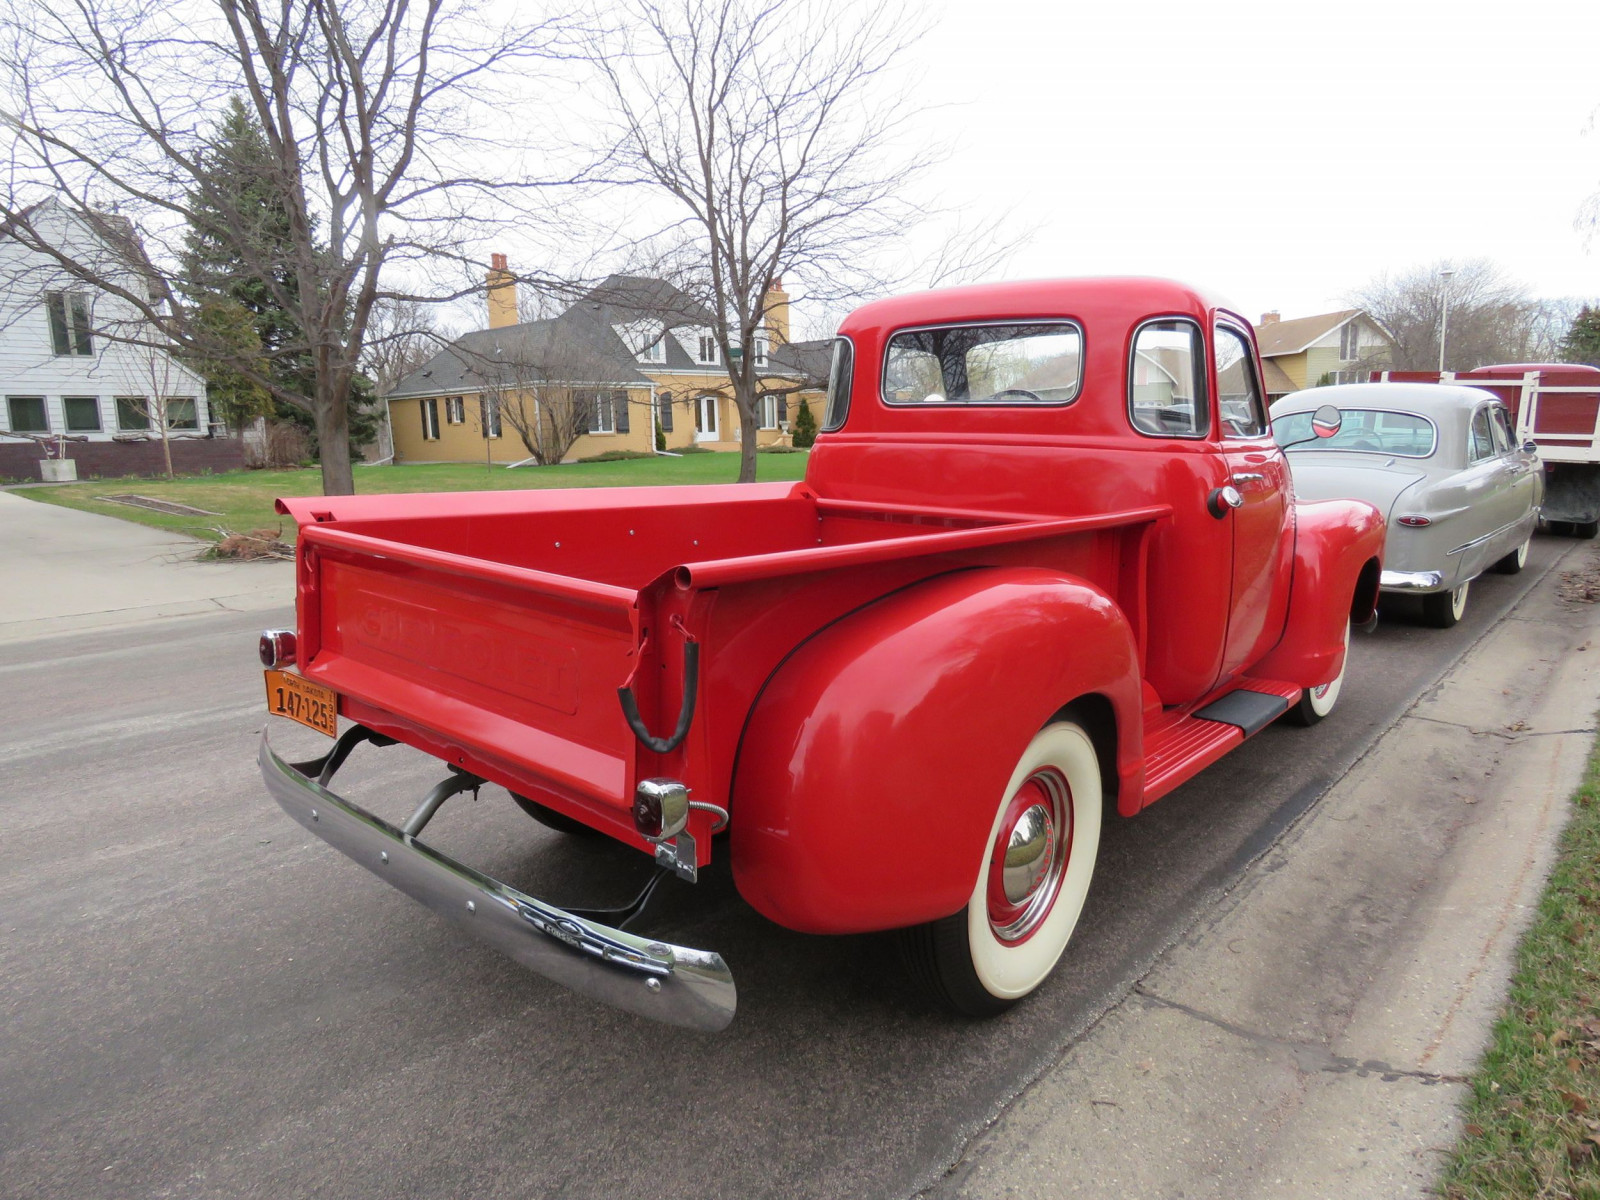 1950 Chevrolet 3100 5 window Pickup - Image 6